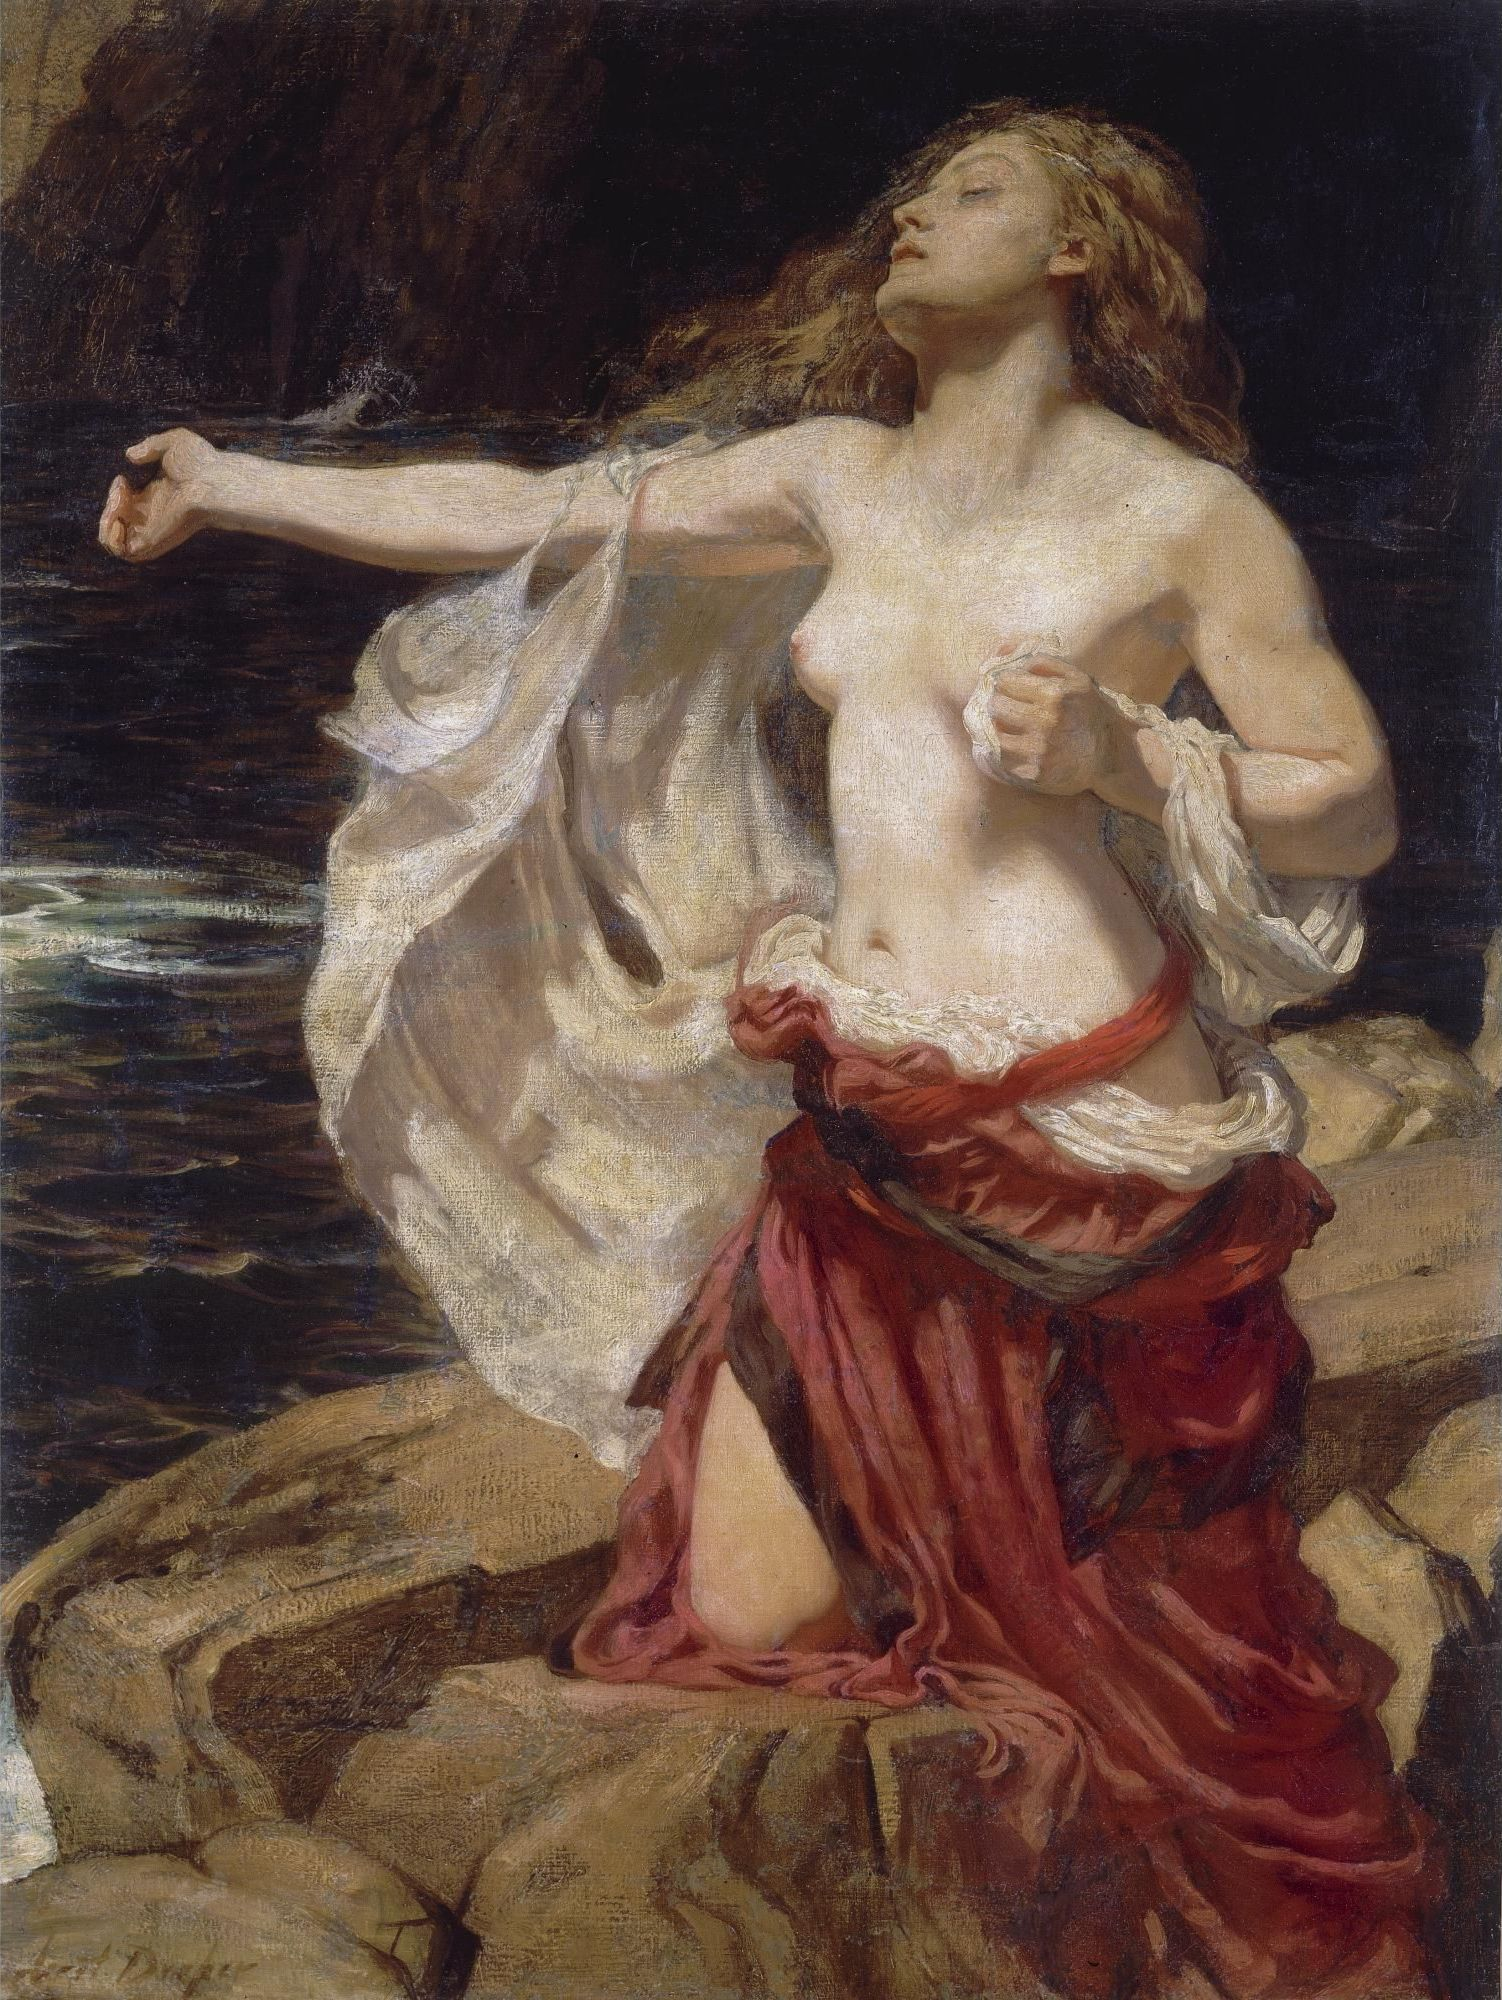 https://upload.wikimedia.org/wikipedia/commons/9/96/Herbert_James_Draper,_Ariadne.jpg